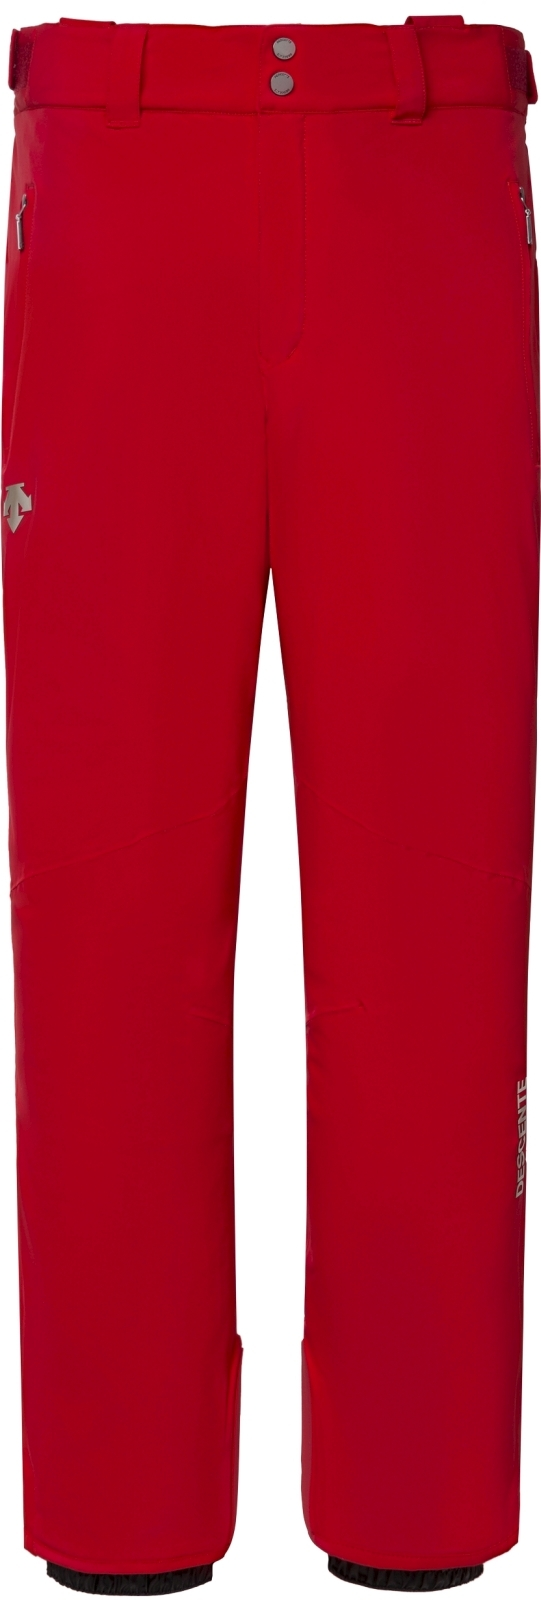 Descente Swiss Pants - electric red 54